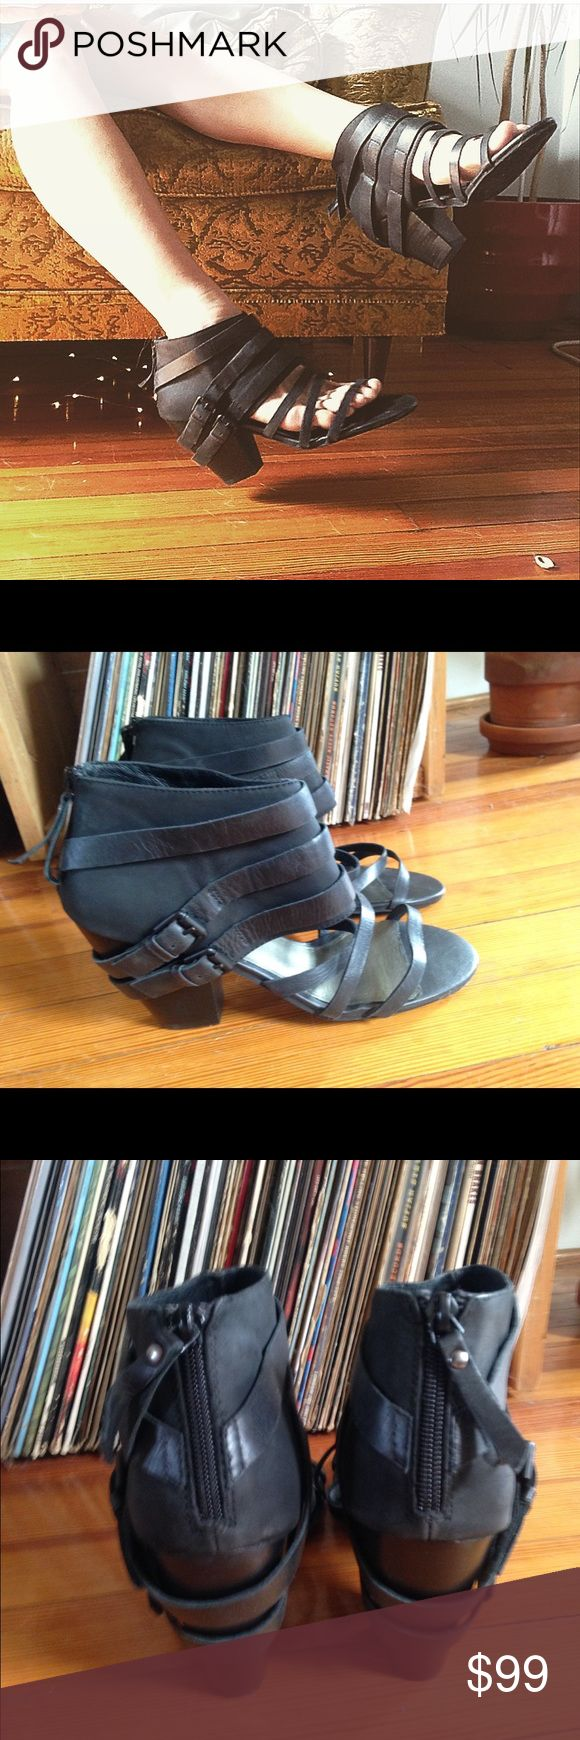 NEW free people X Matisse strappy cutout boot heel Sz 10 new store model light marks on soles from being tried on in store. Matisse brand sold at free people. All leather. Rad boots that work dressed up or down with jeans. Free People Shoes Ankle Boots & Booties